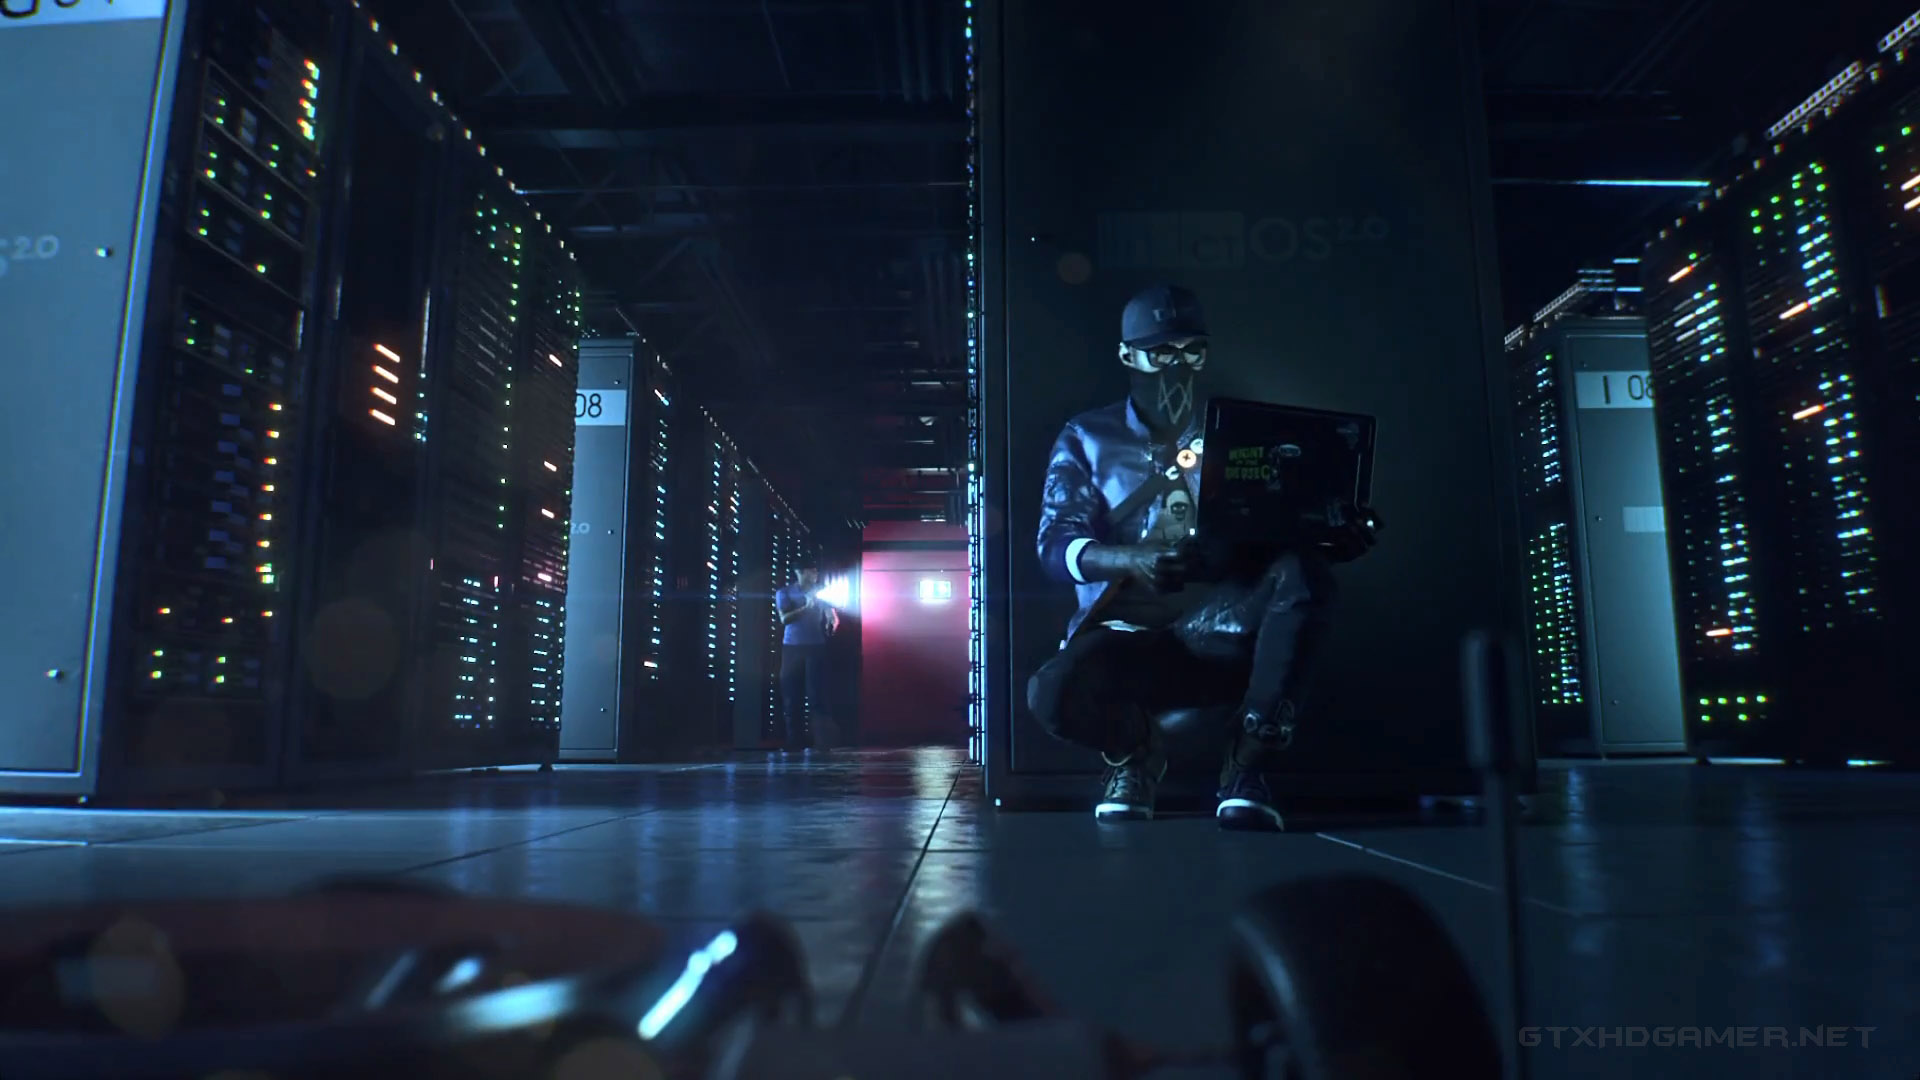 Watch Dogs 2 Wallpaper 1920x1080: Watch Dogs 2 Video Game Wallpapers